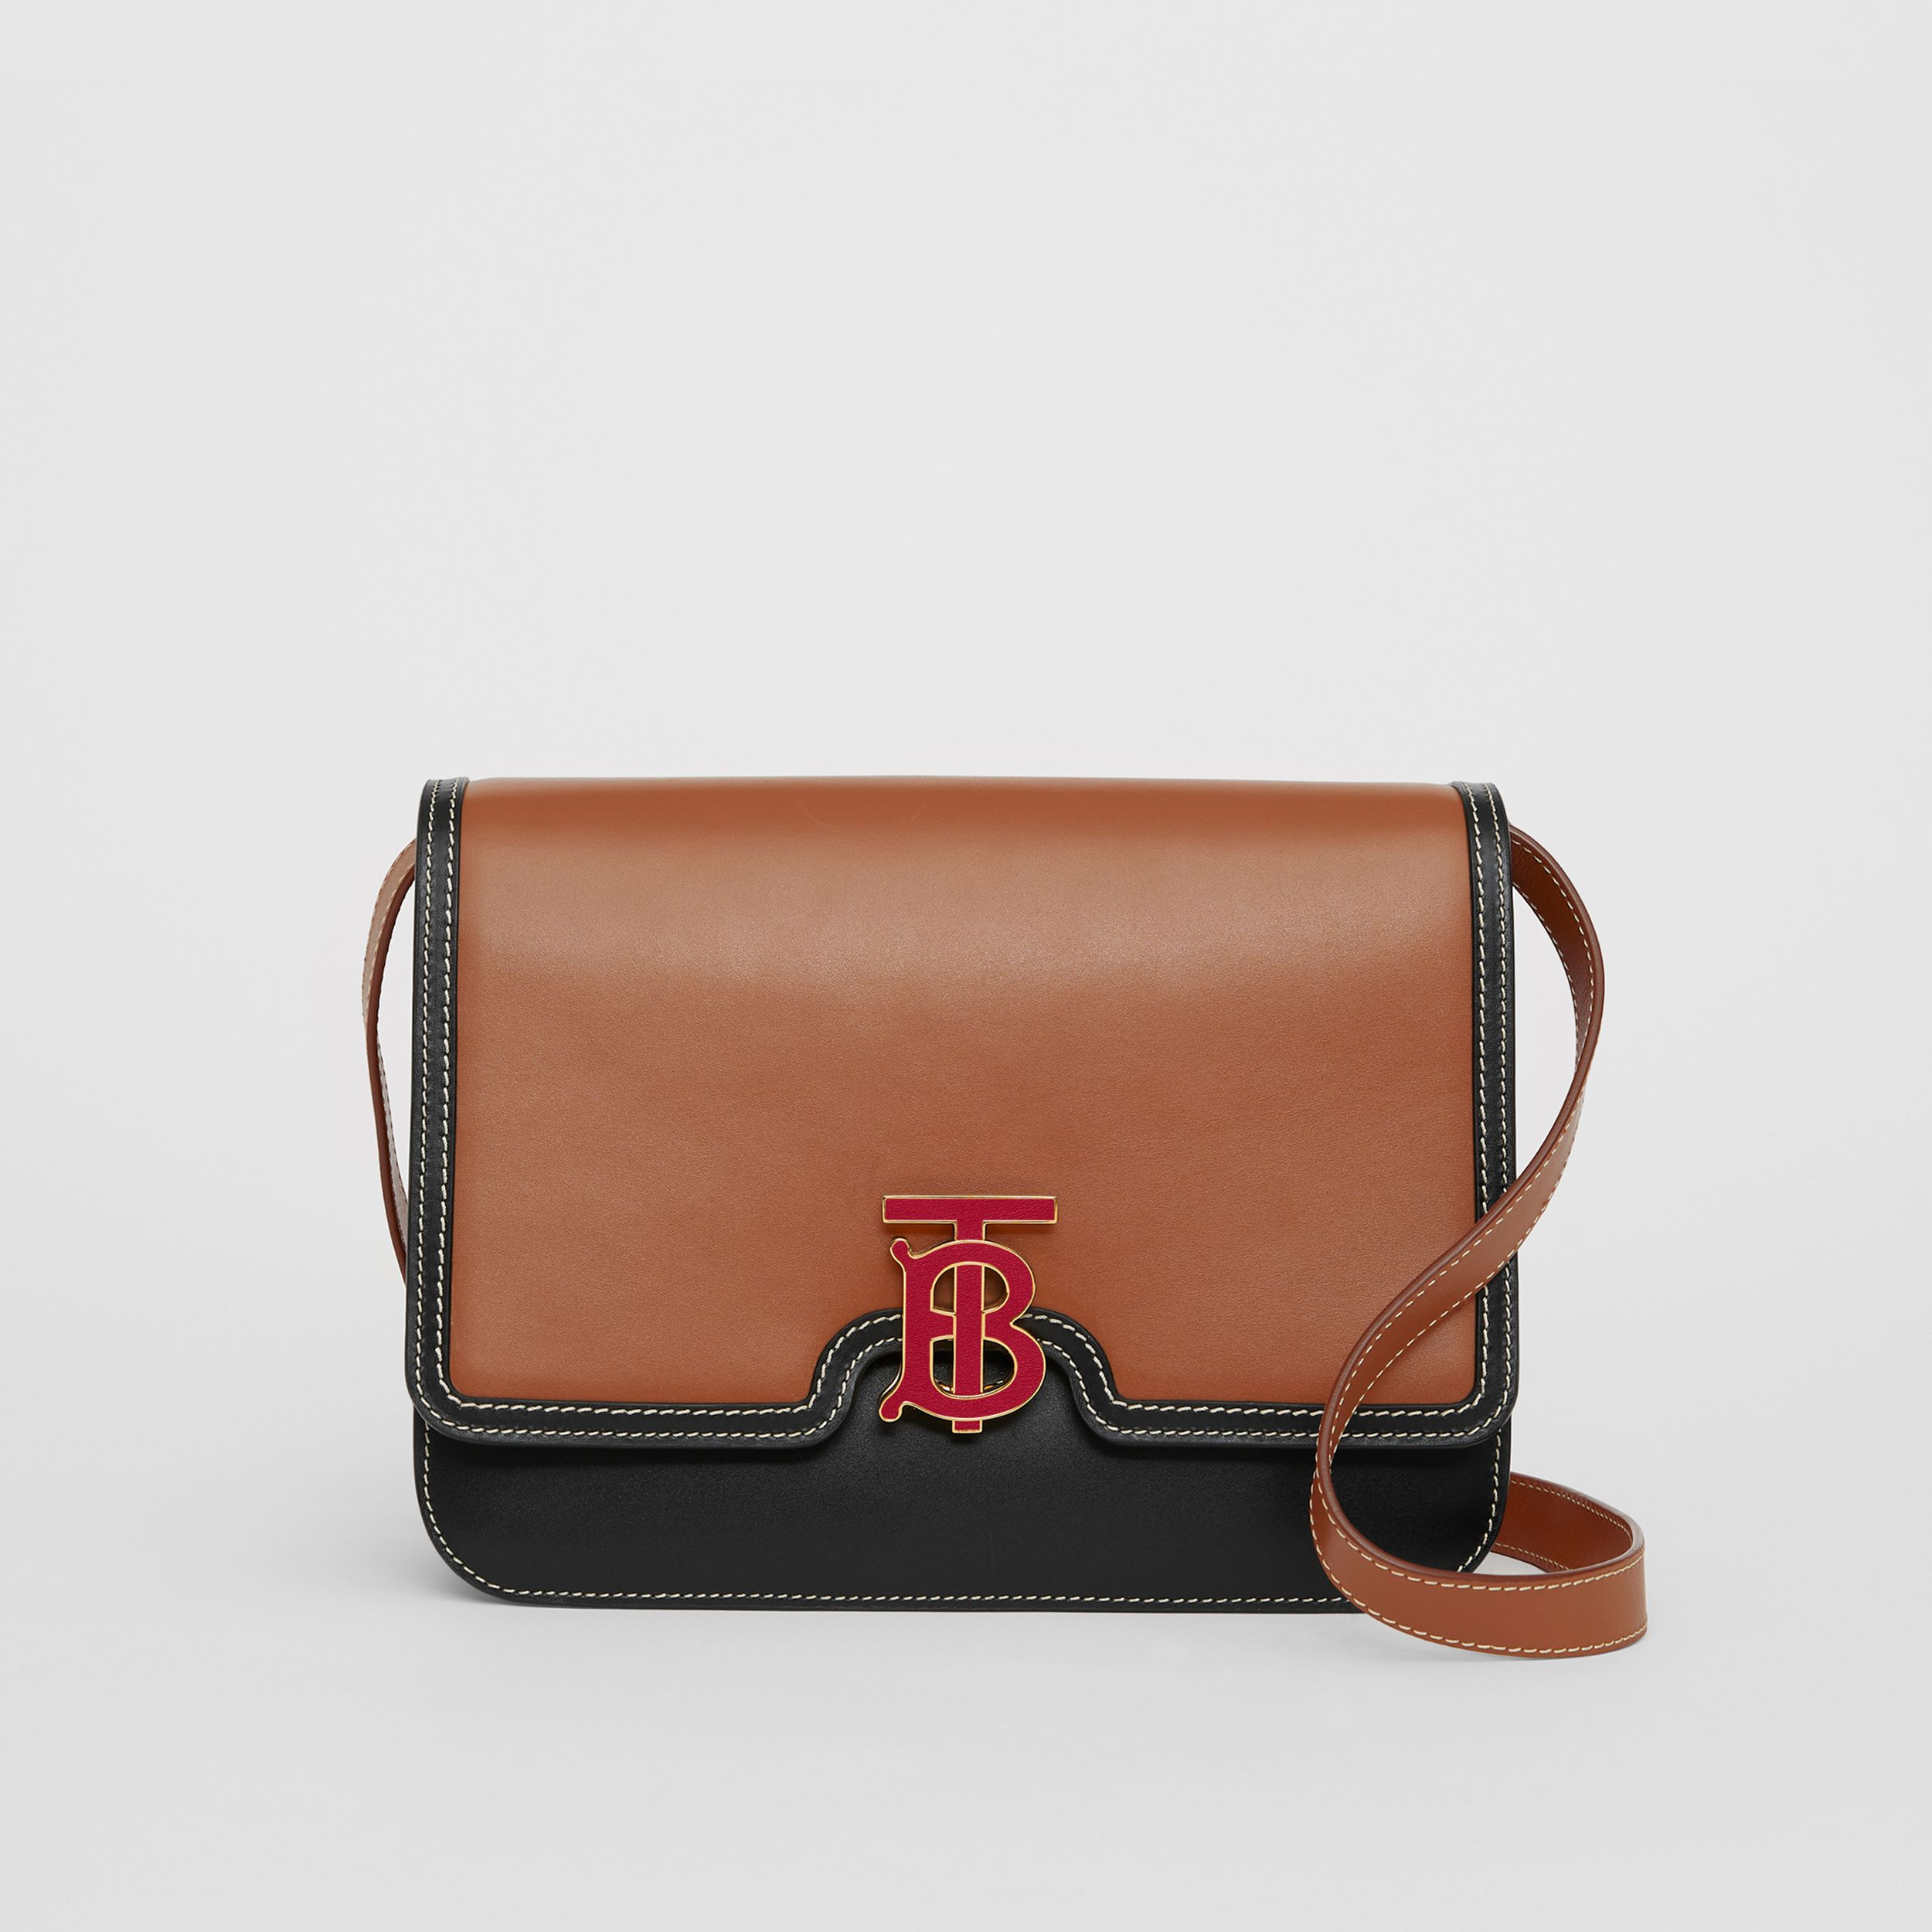 Medium Two-tone Leather TB Bag in Malt Brown/black | Burberry - 1